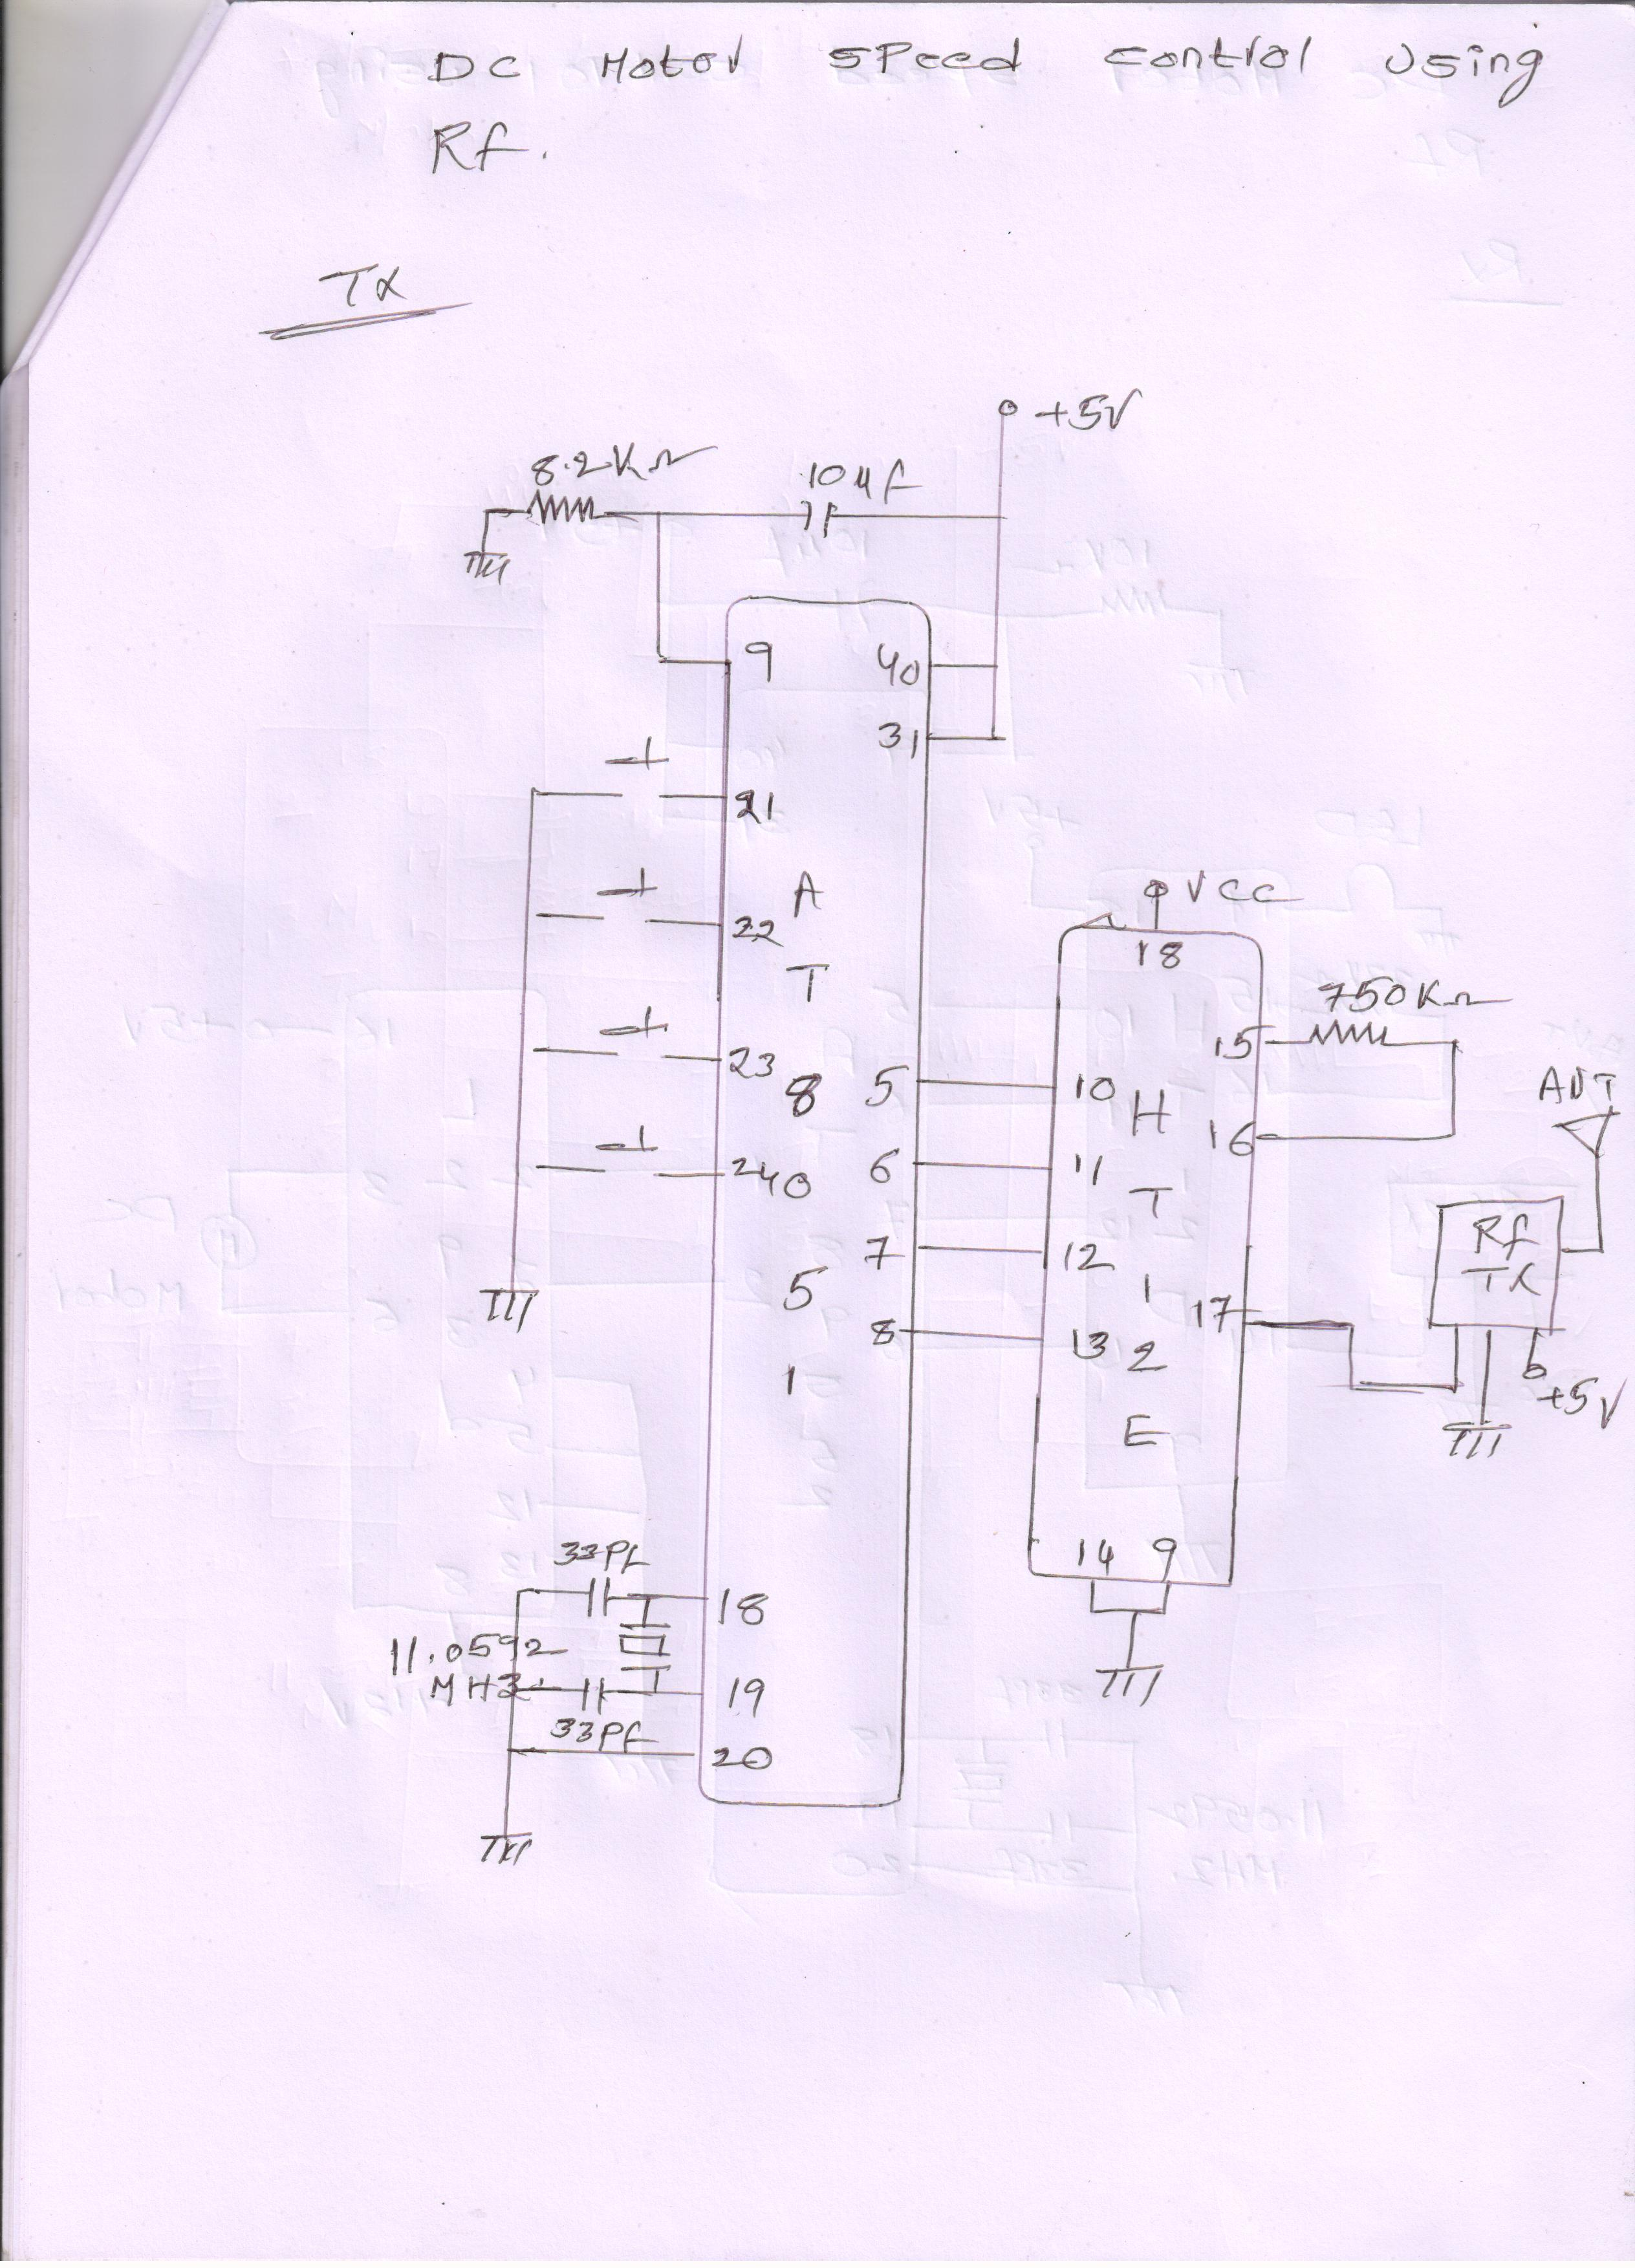 Sritech Solutions Underground Cable Fault Detection Using Gsm Android Schematic 8051picavrandroidarmfingerprinttouch Screenroboticsgpsbluetoothlcdrfidsmart Cardsensorsmmc Sd Cardpczigbeexbeecanmemsautomationvoice